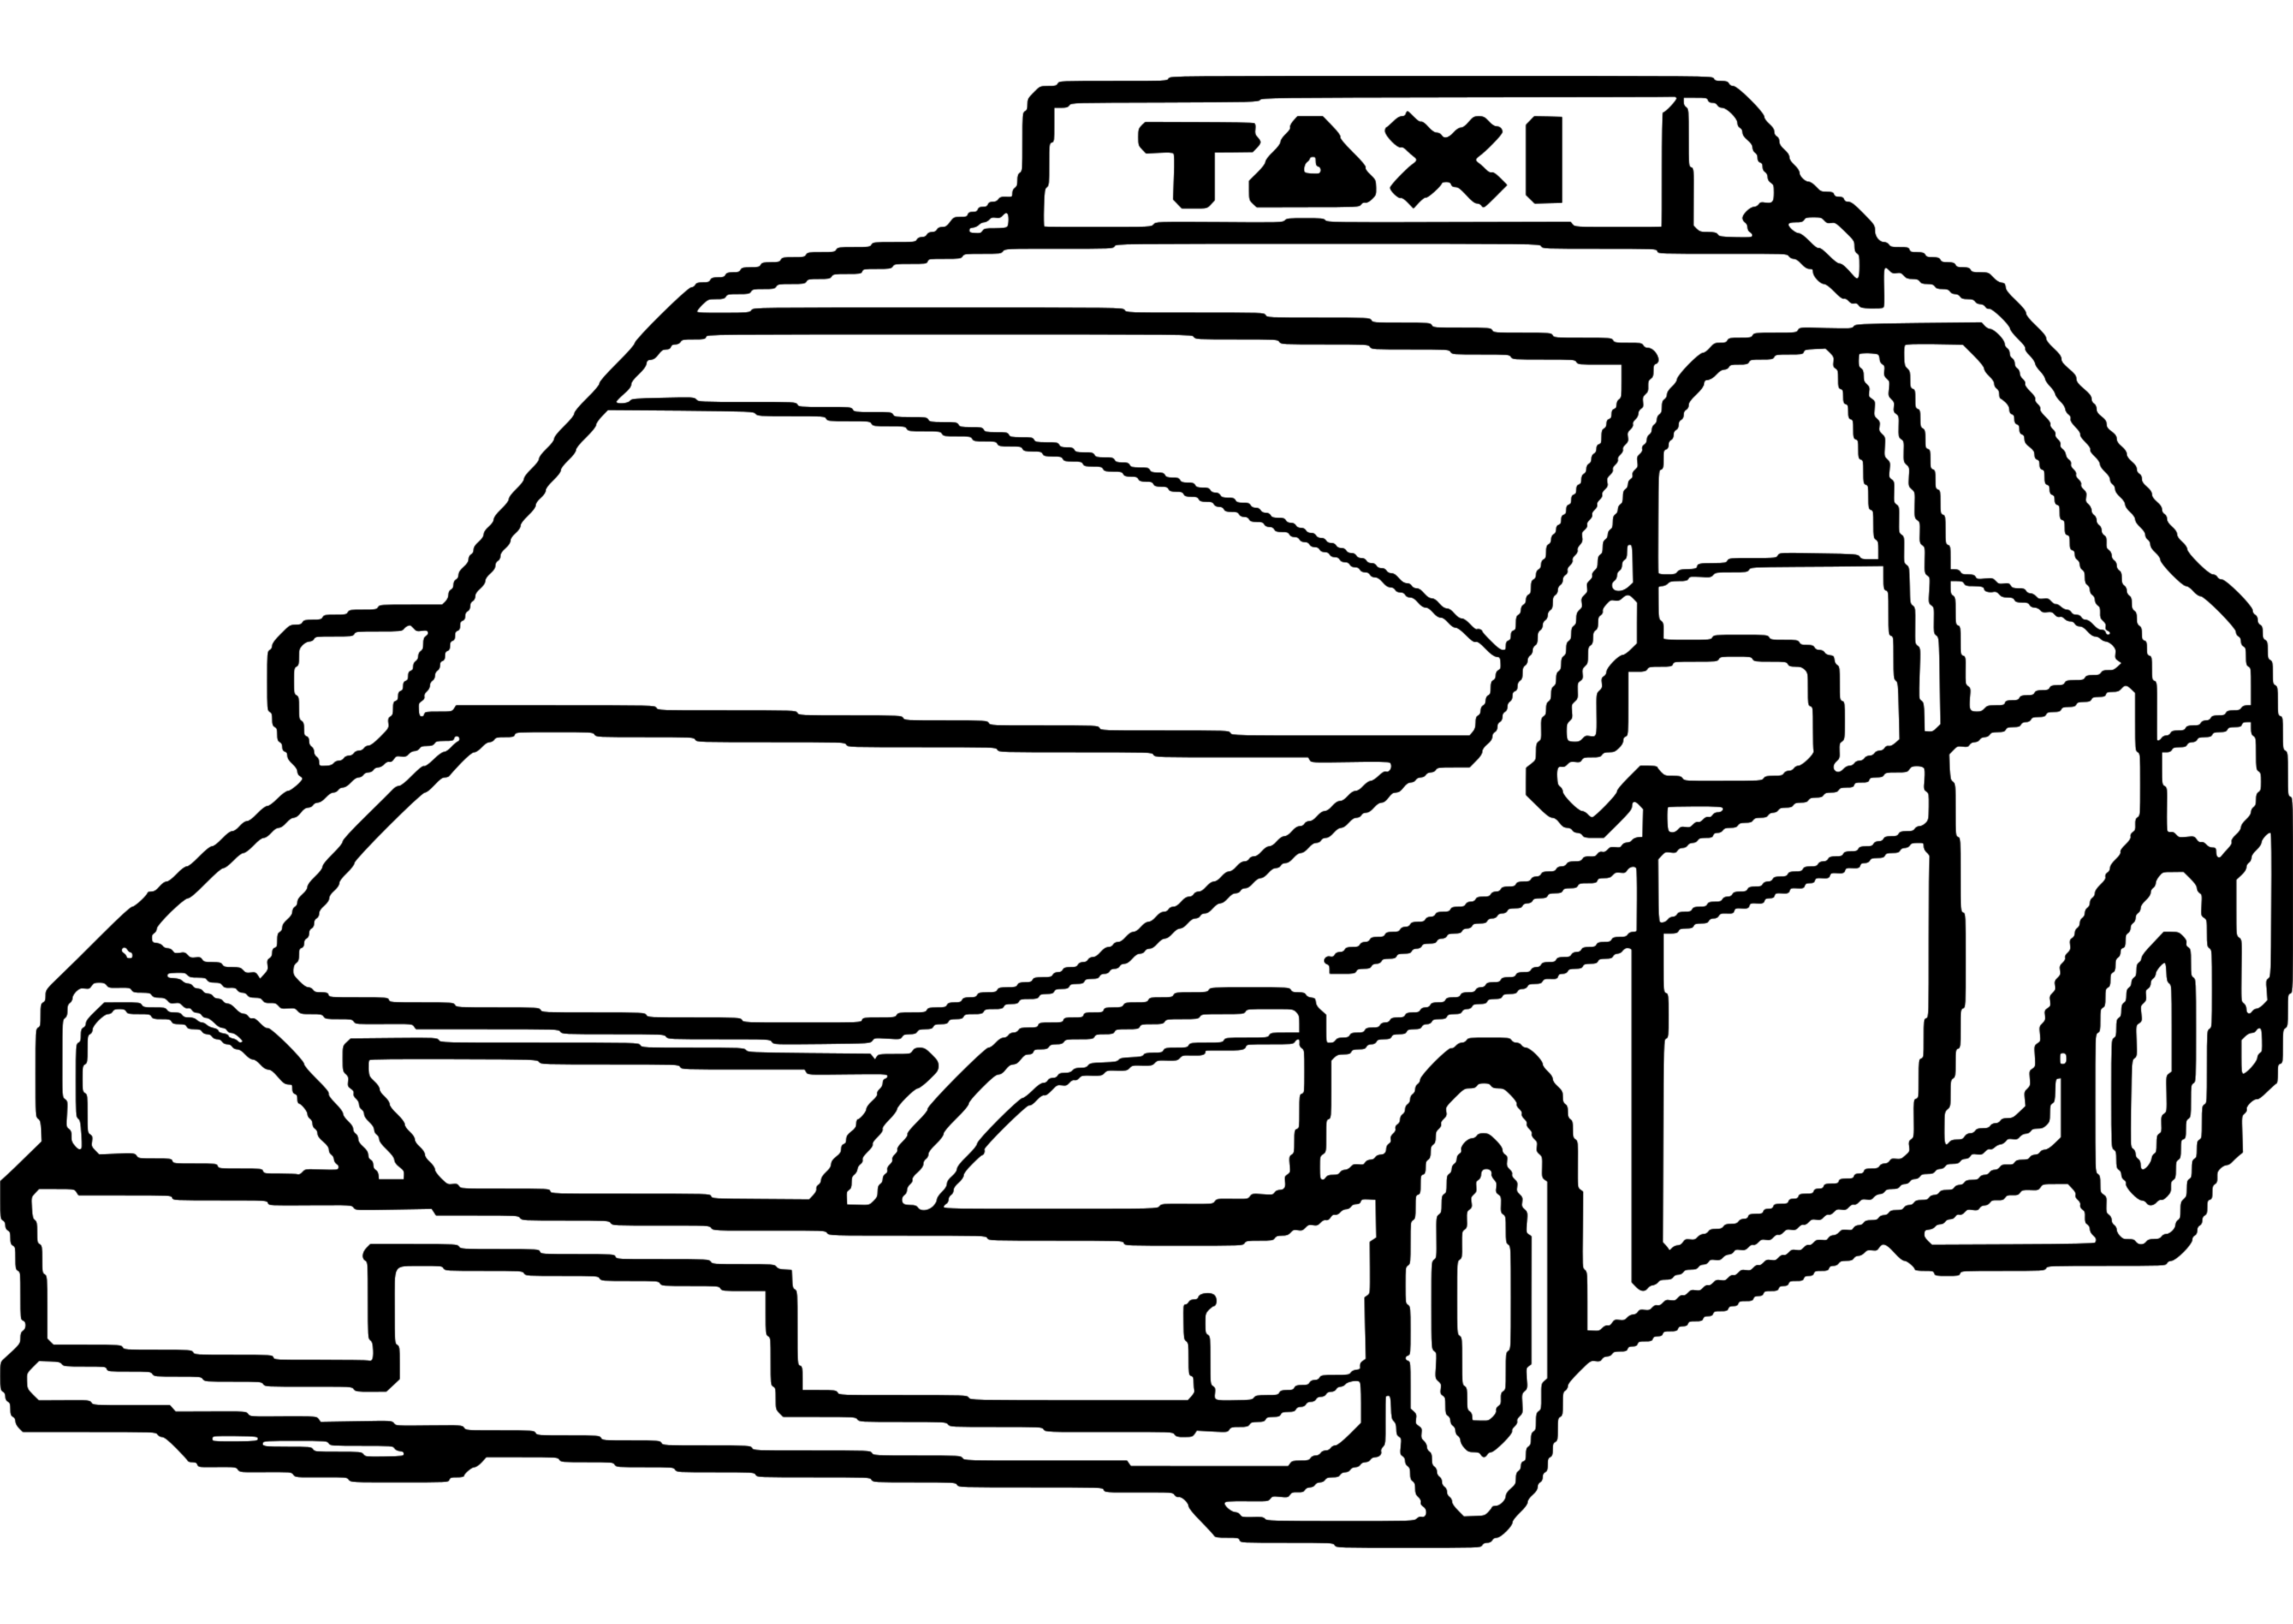 taxi colouring pages taxi sheet coloring pages pages colouring taxi